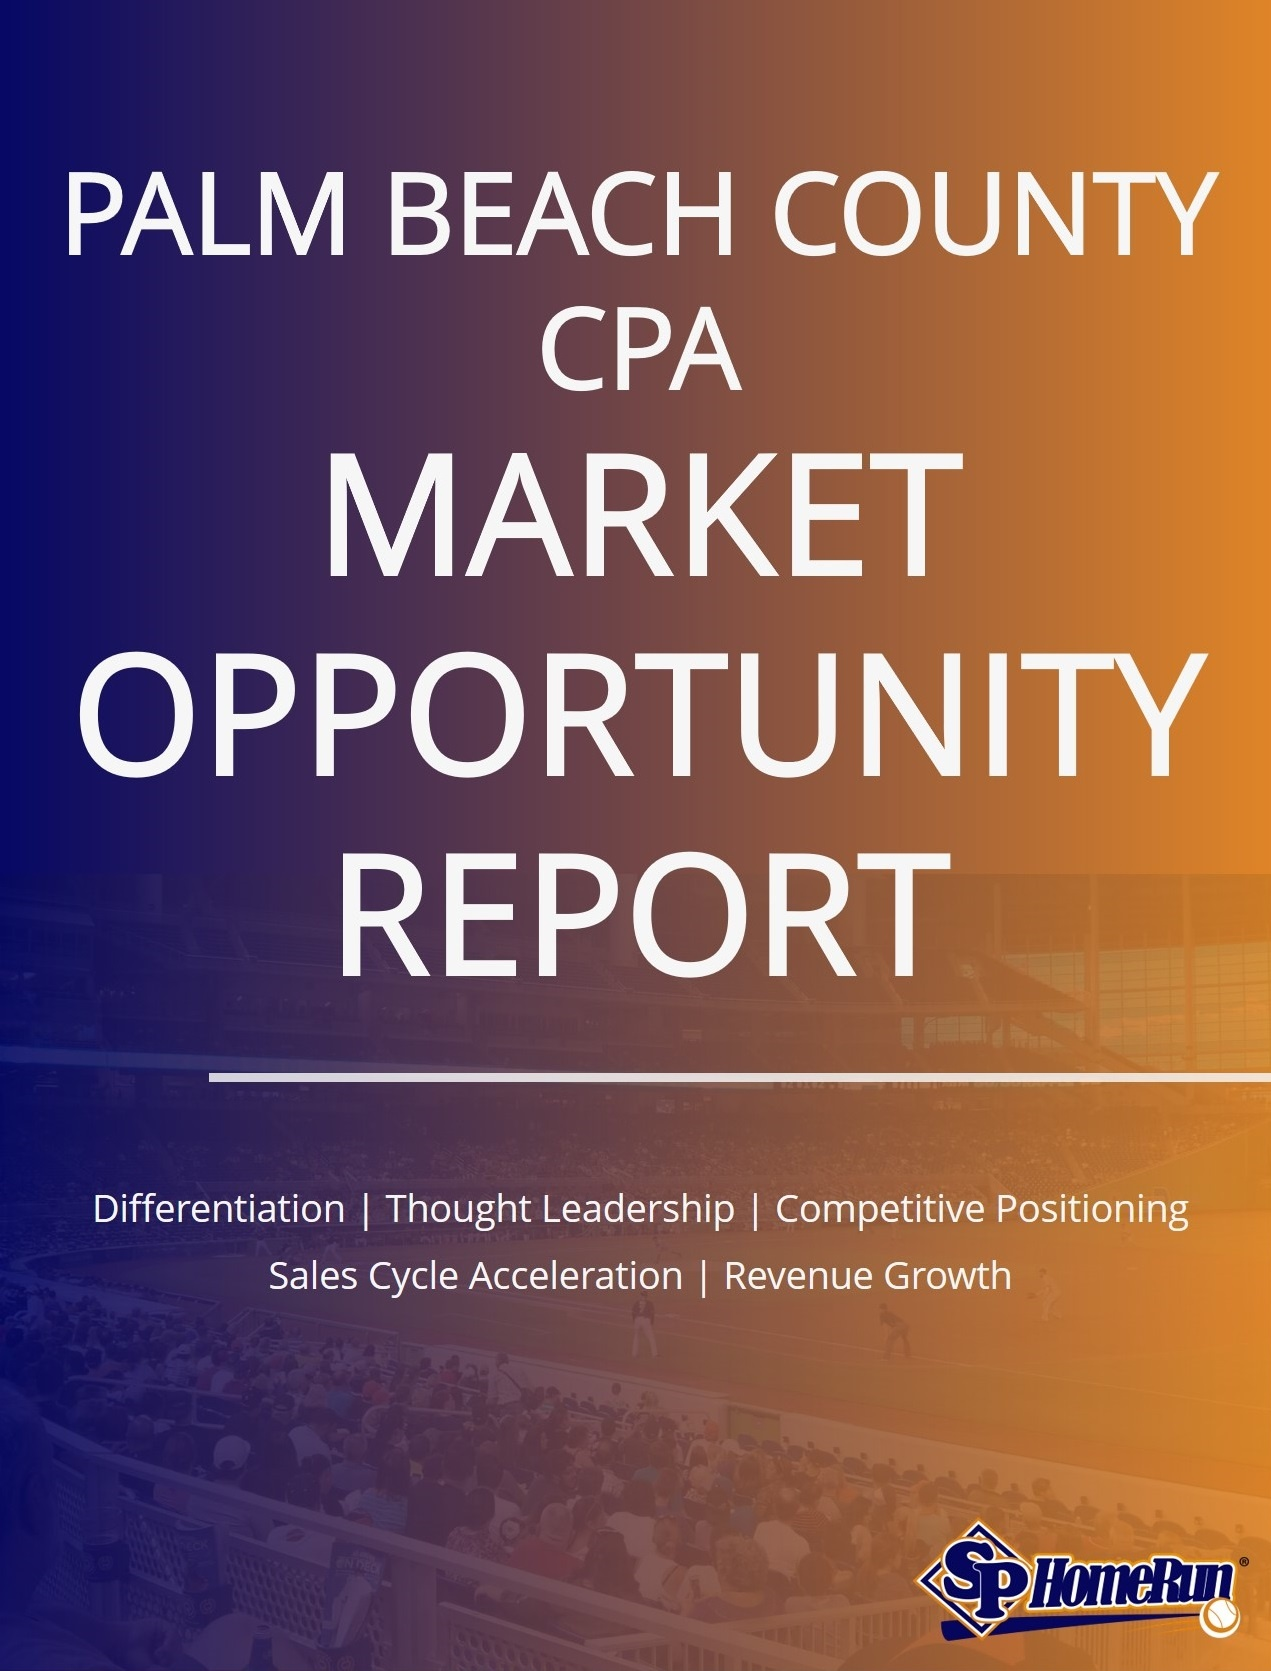 Palm Beach County CPA Market Opportunity Report